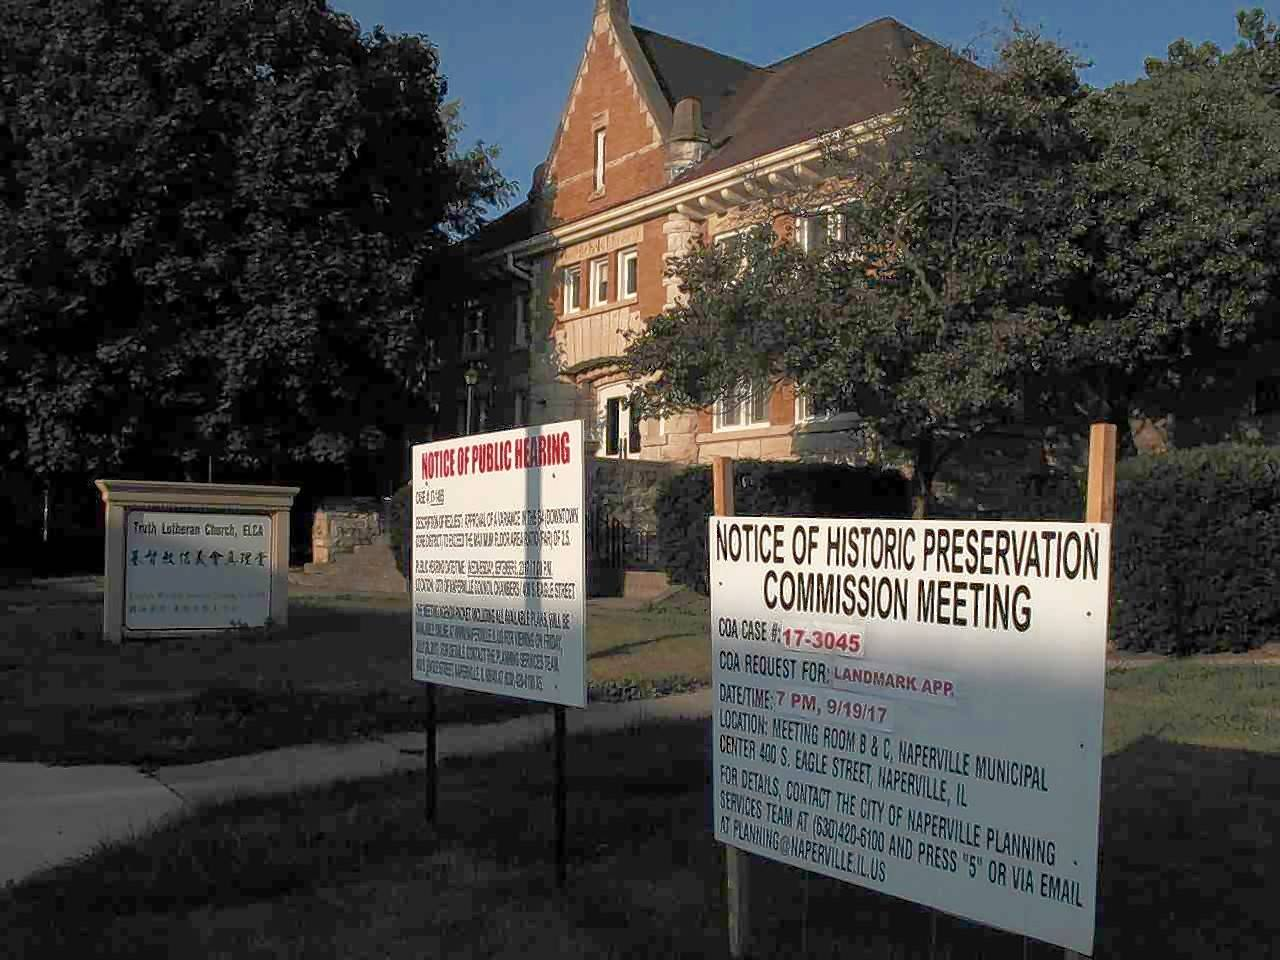 Signs in front of the old Nichols Library in Naperville inform passers-by of a development proposal, which since has been withdrawn, and an application for landmark status for the 119-year-old building. Landmark status was granted Tuesday night.